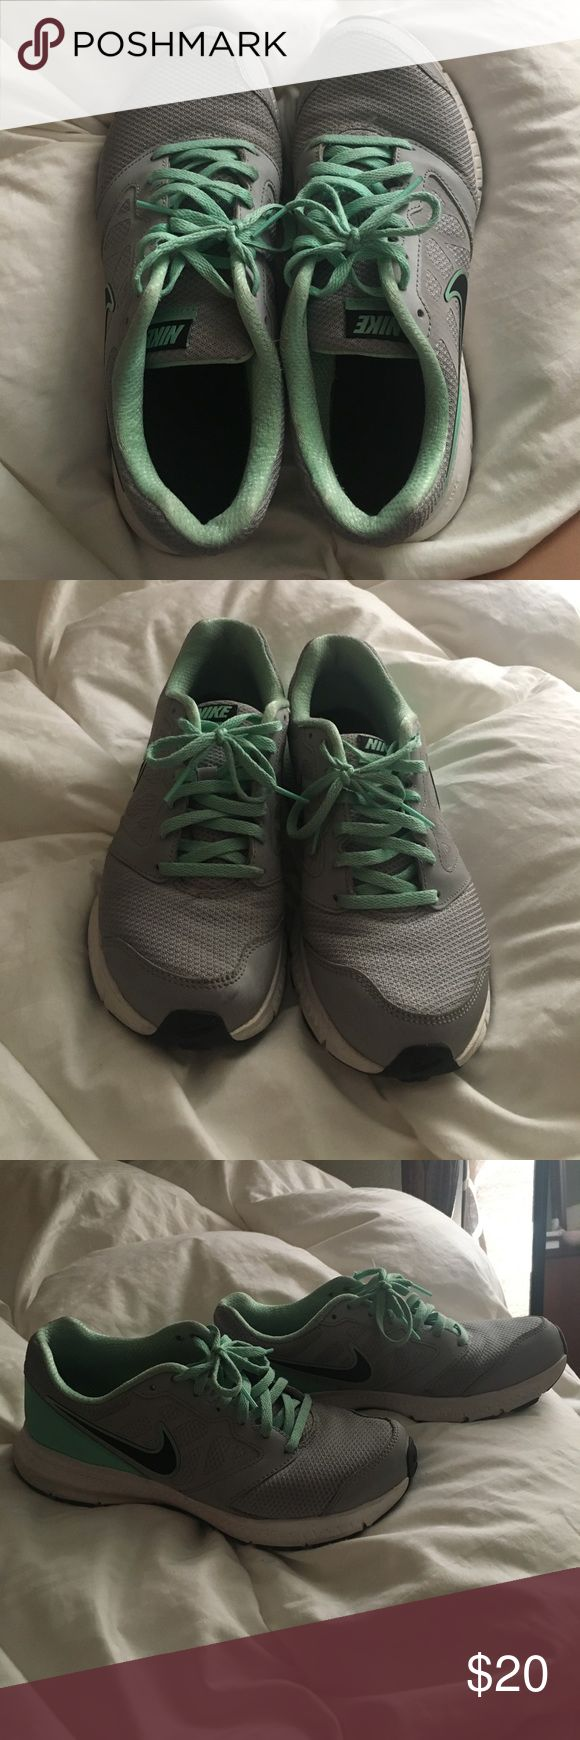 Nike Tennis Shoes Women's Turquoise and grey Nike tennis shoes, used but in EXCELLENT condition, size 7.5. BUNDLE AND SAVE! Nike Shoes Sneakers